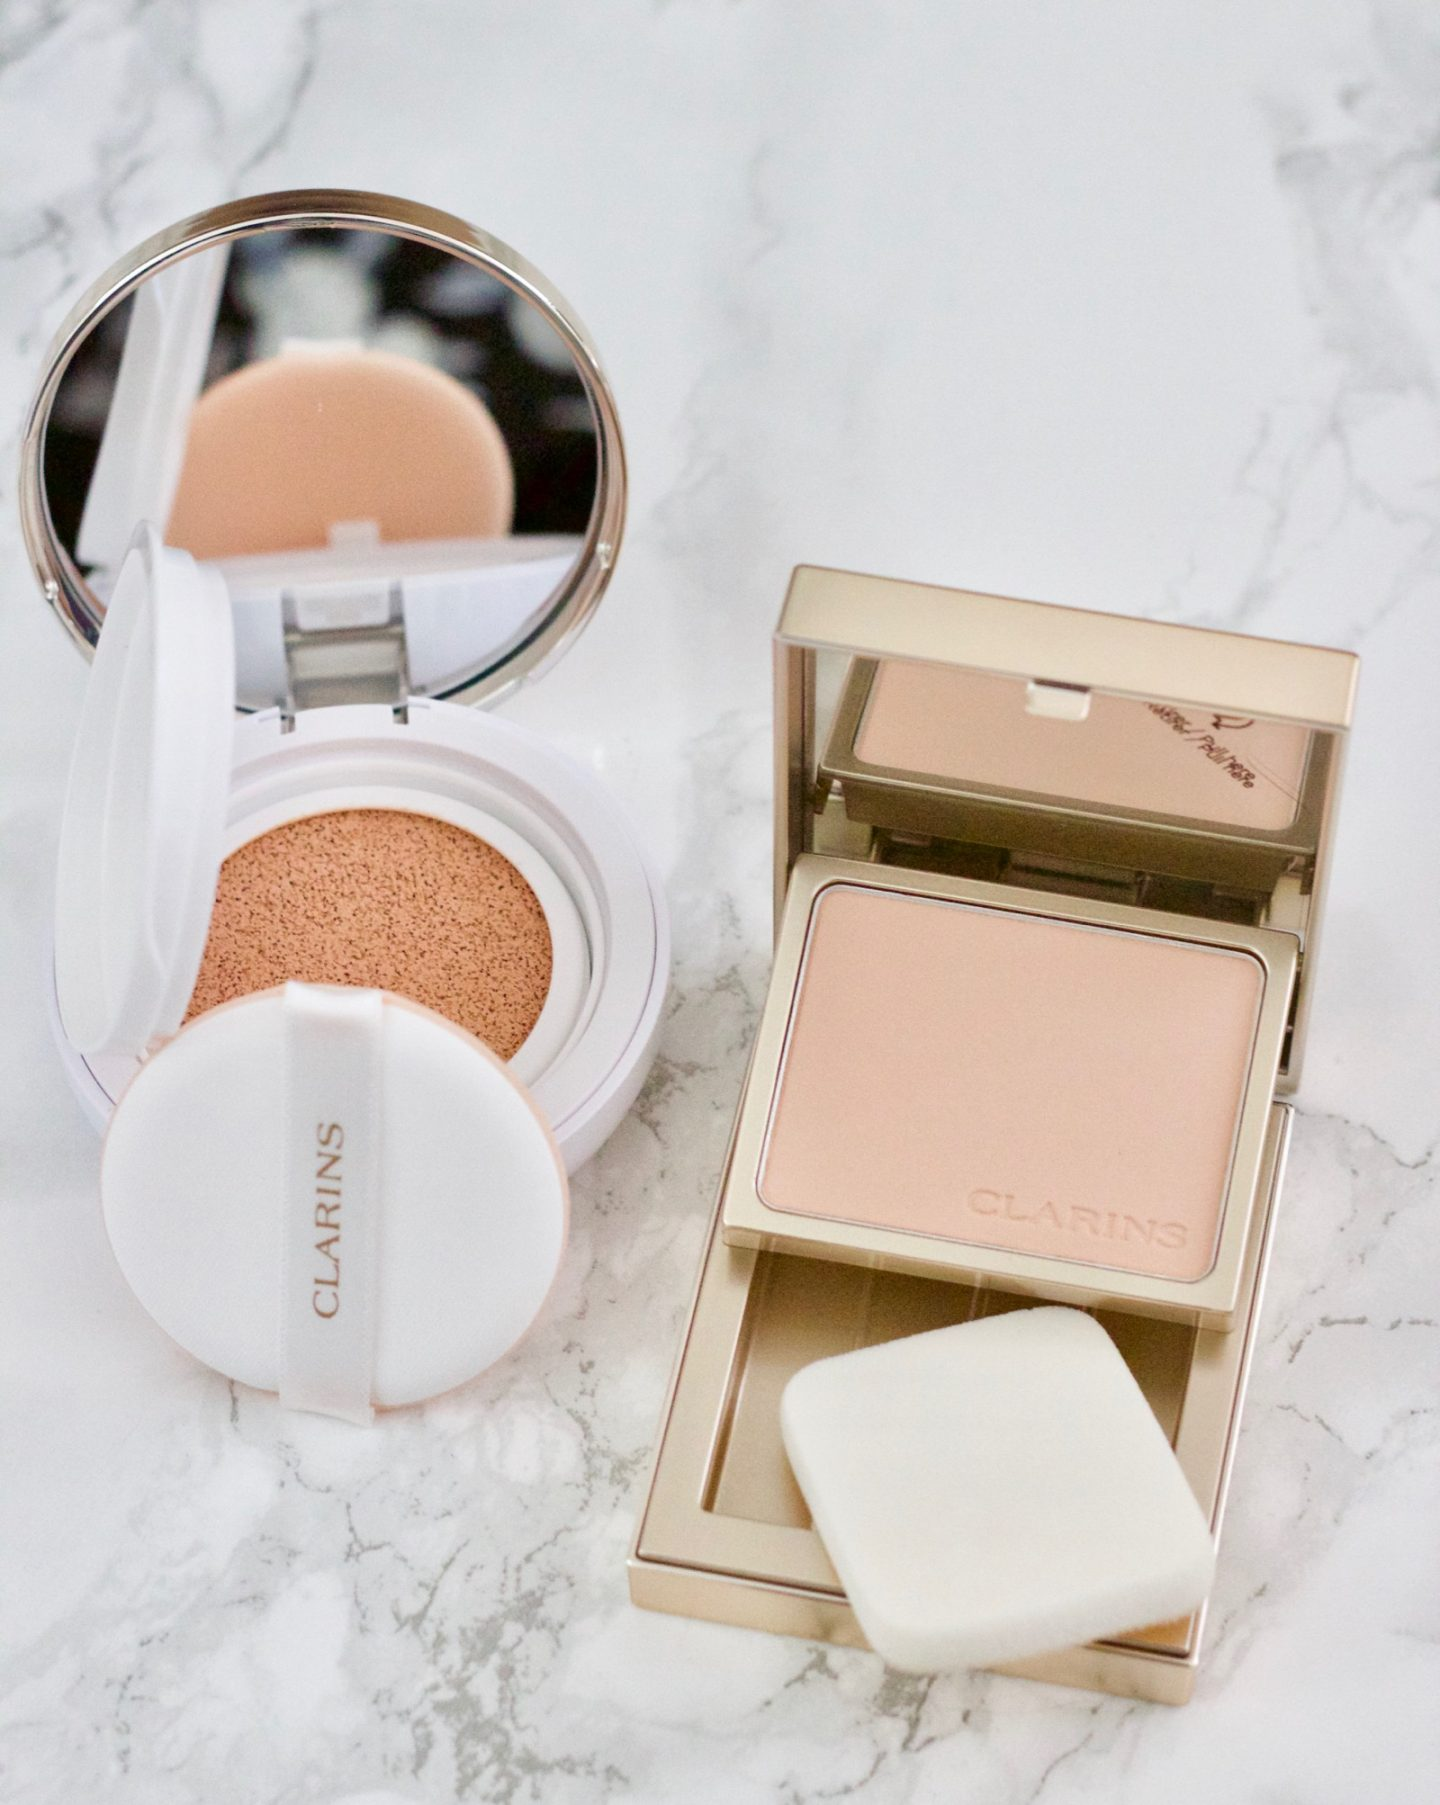 A Duo of New 'Everlasting' Foundations from Clarins